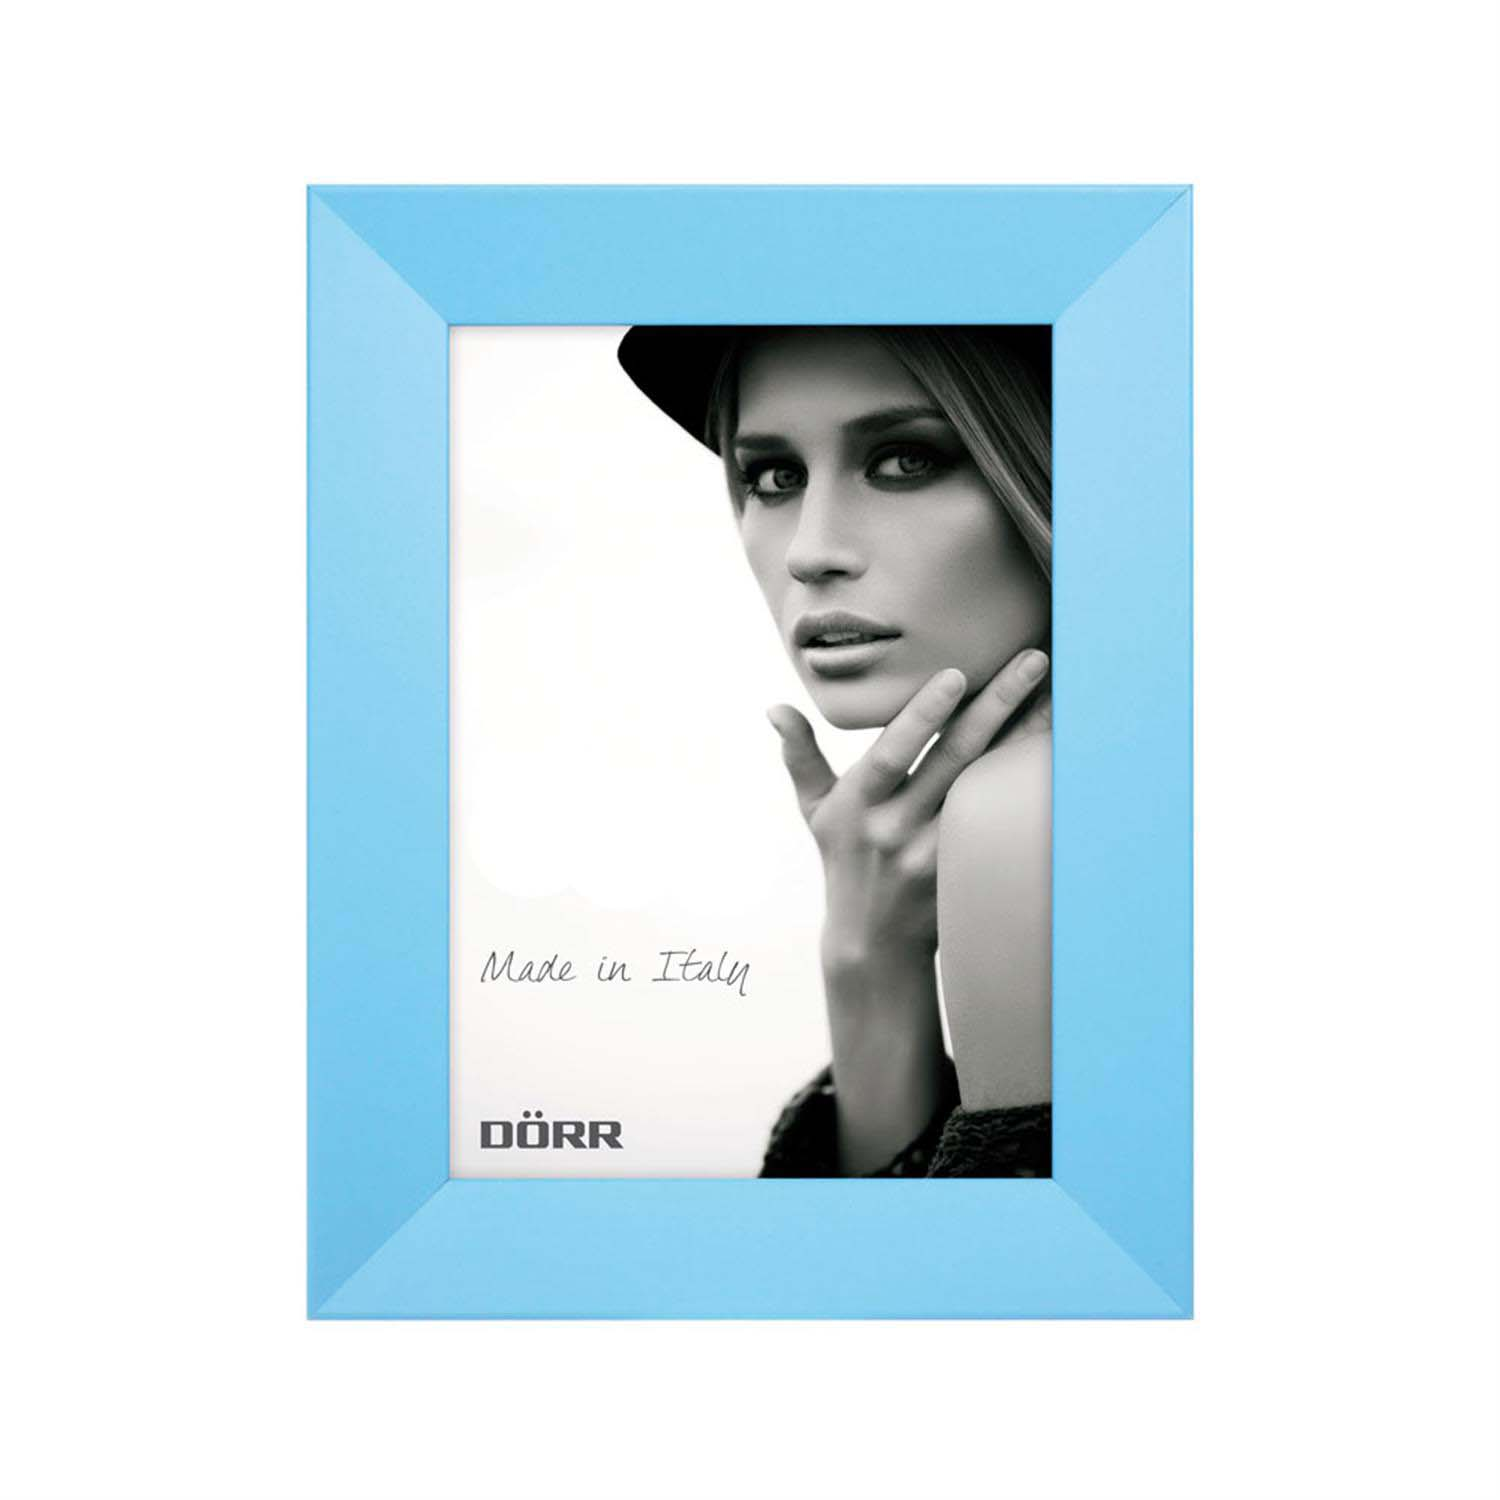 Dorr Trend Blue 6x4 inches Wood Photo Frame